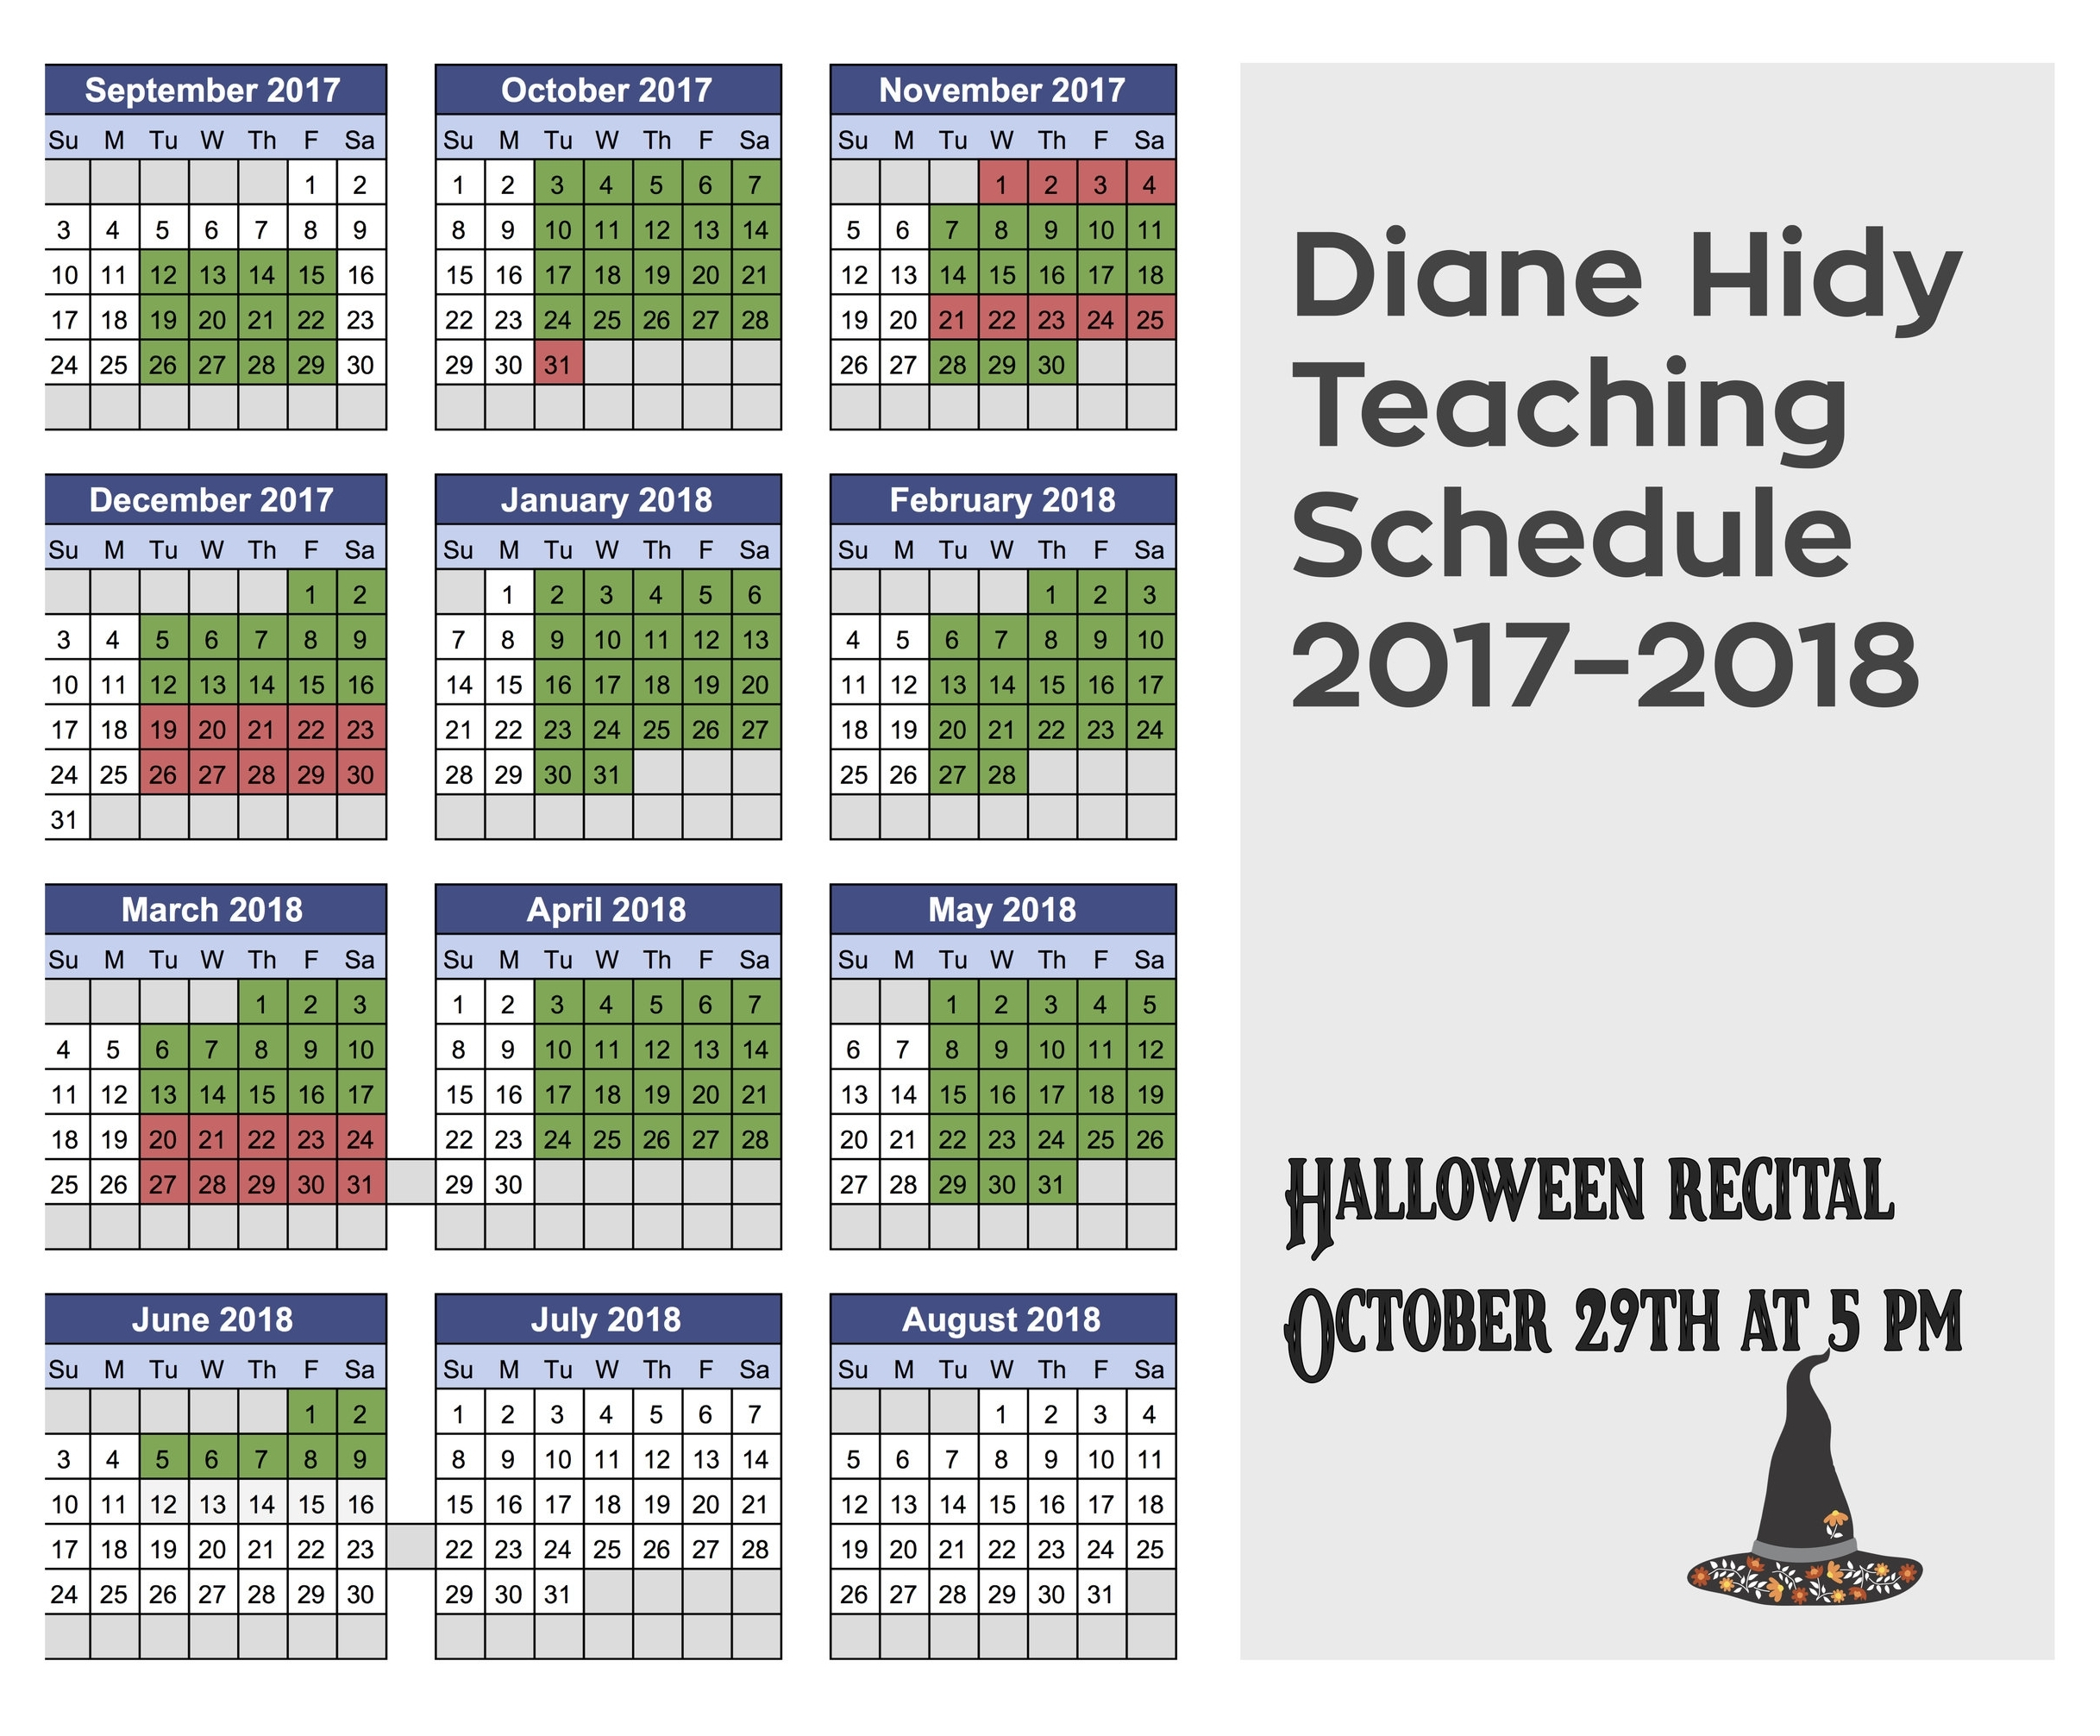 Diane Hidy Teaching Schedule 2017:2018.jpg